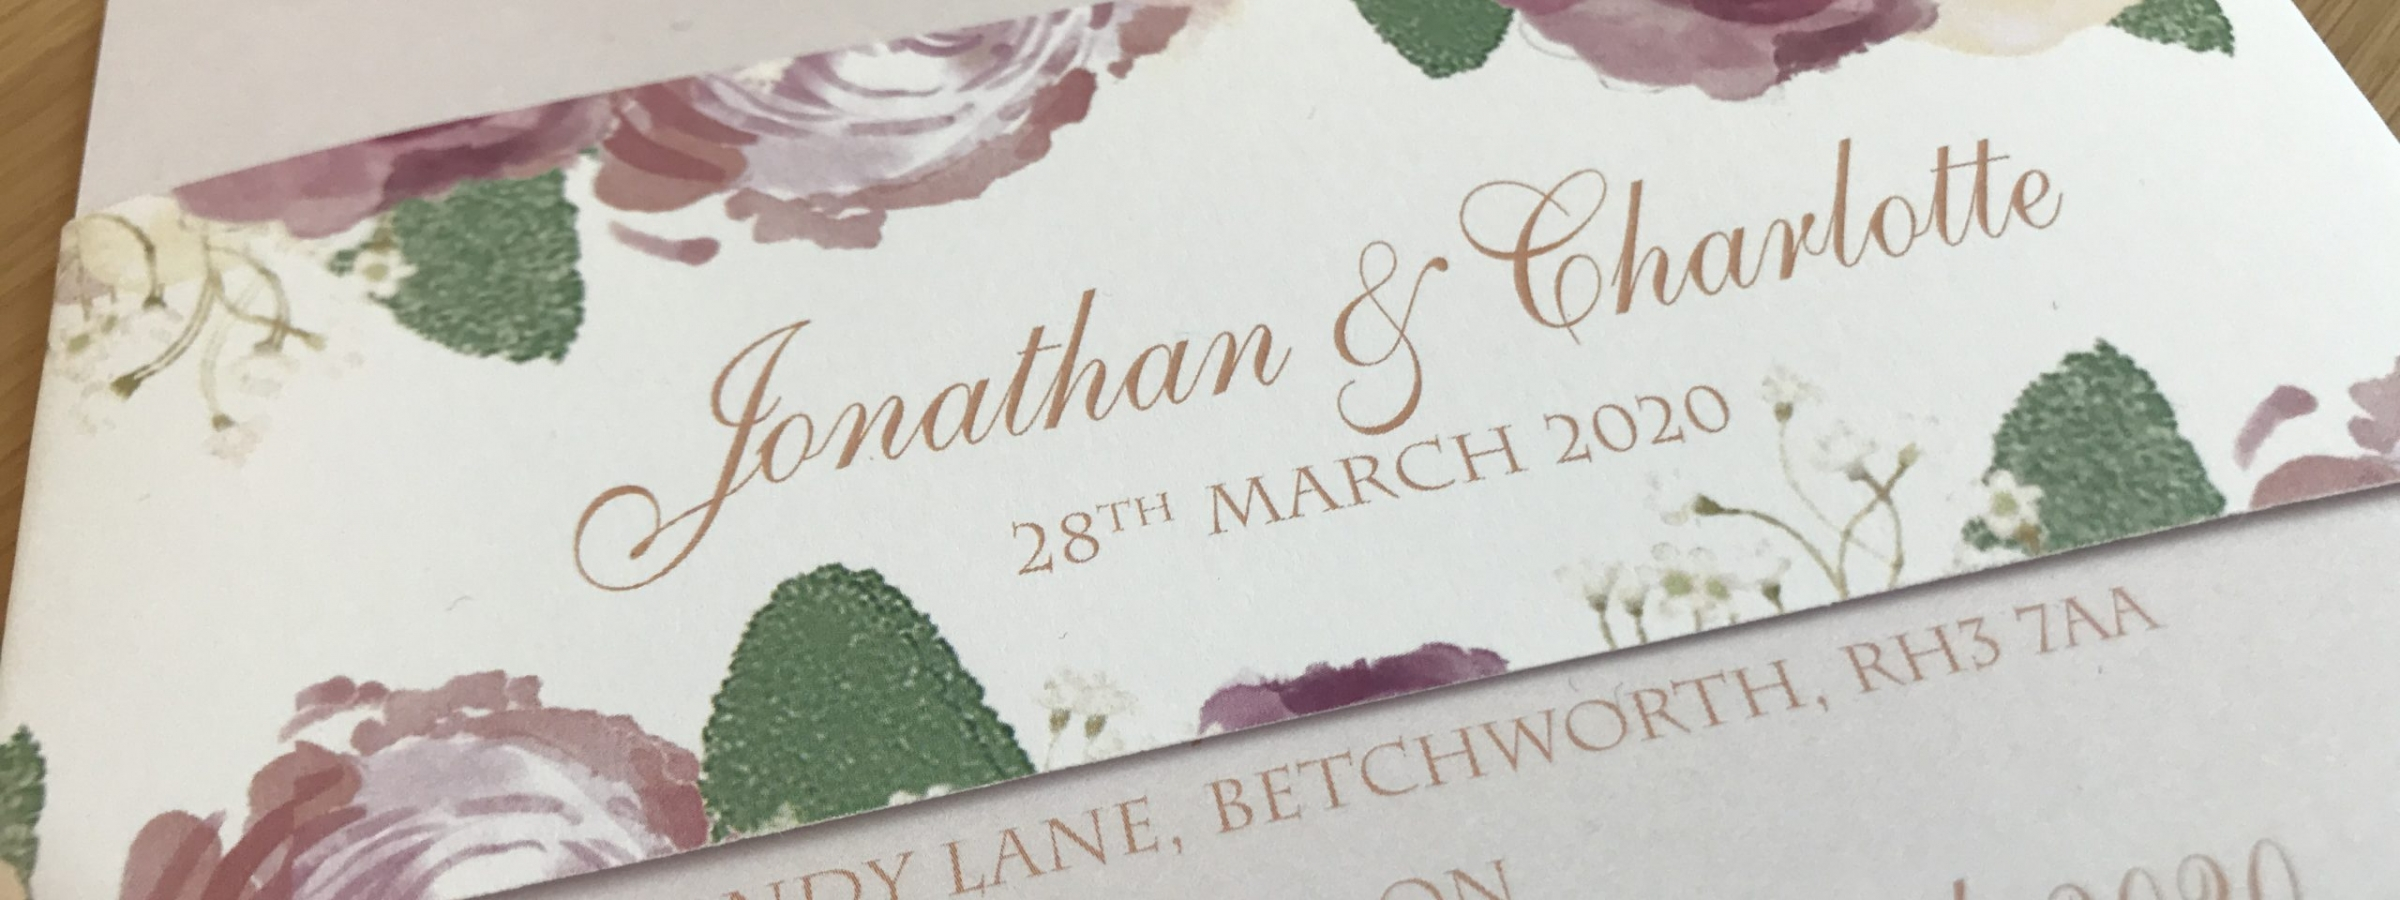 Floral invitation with belly band